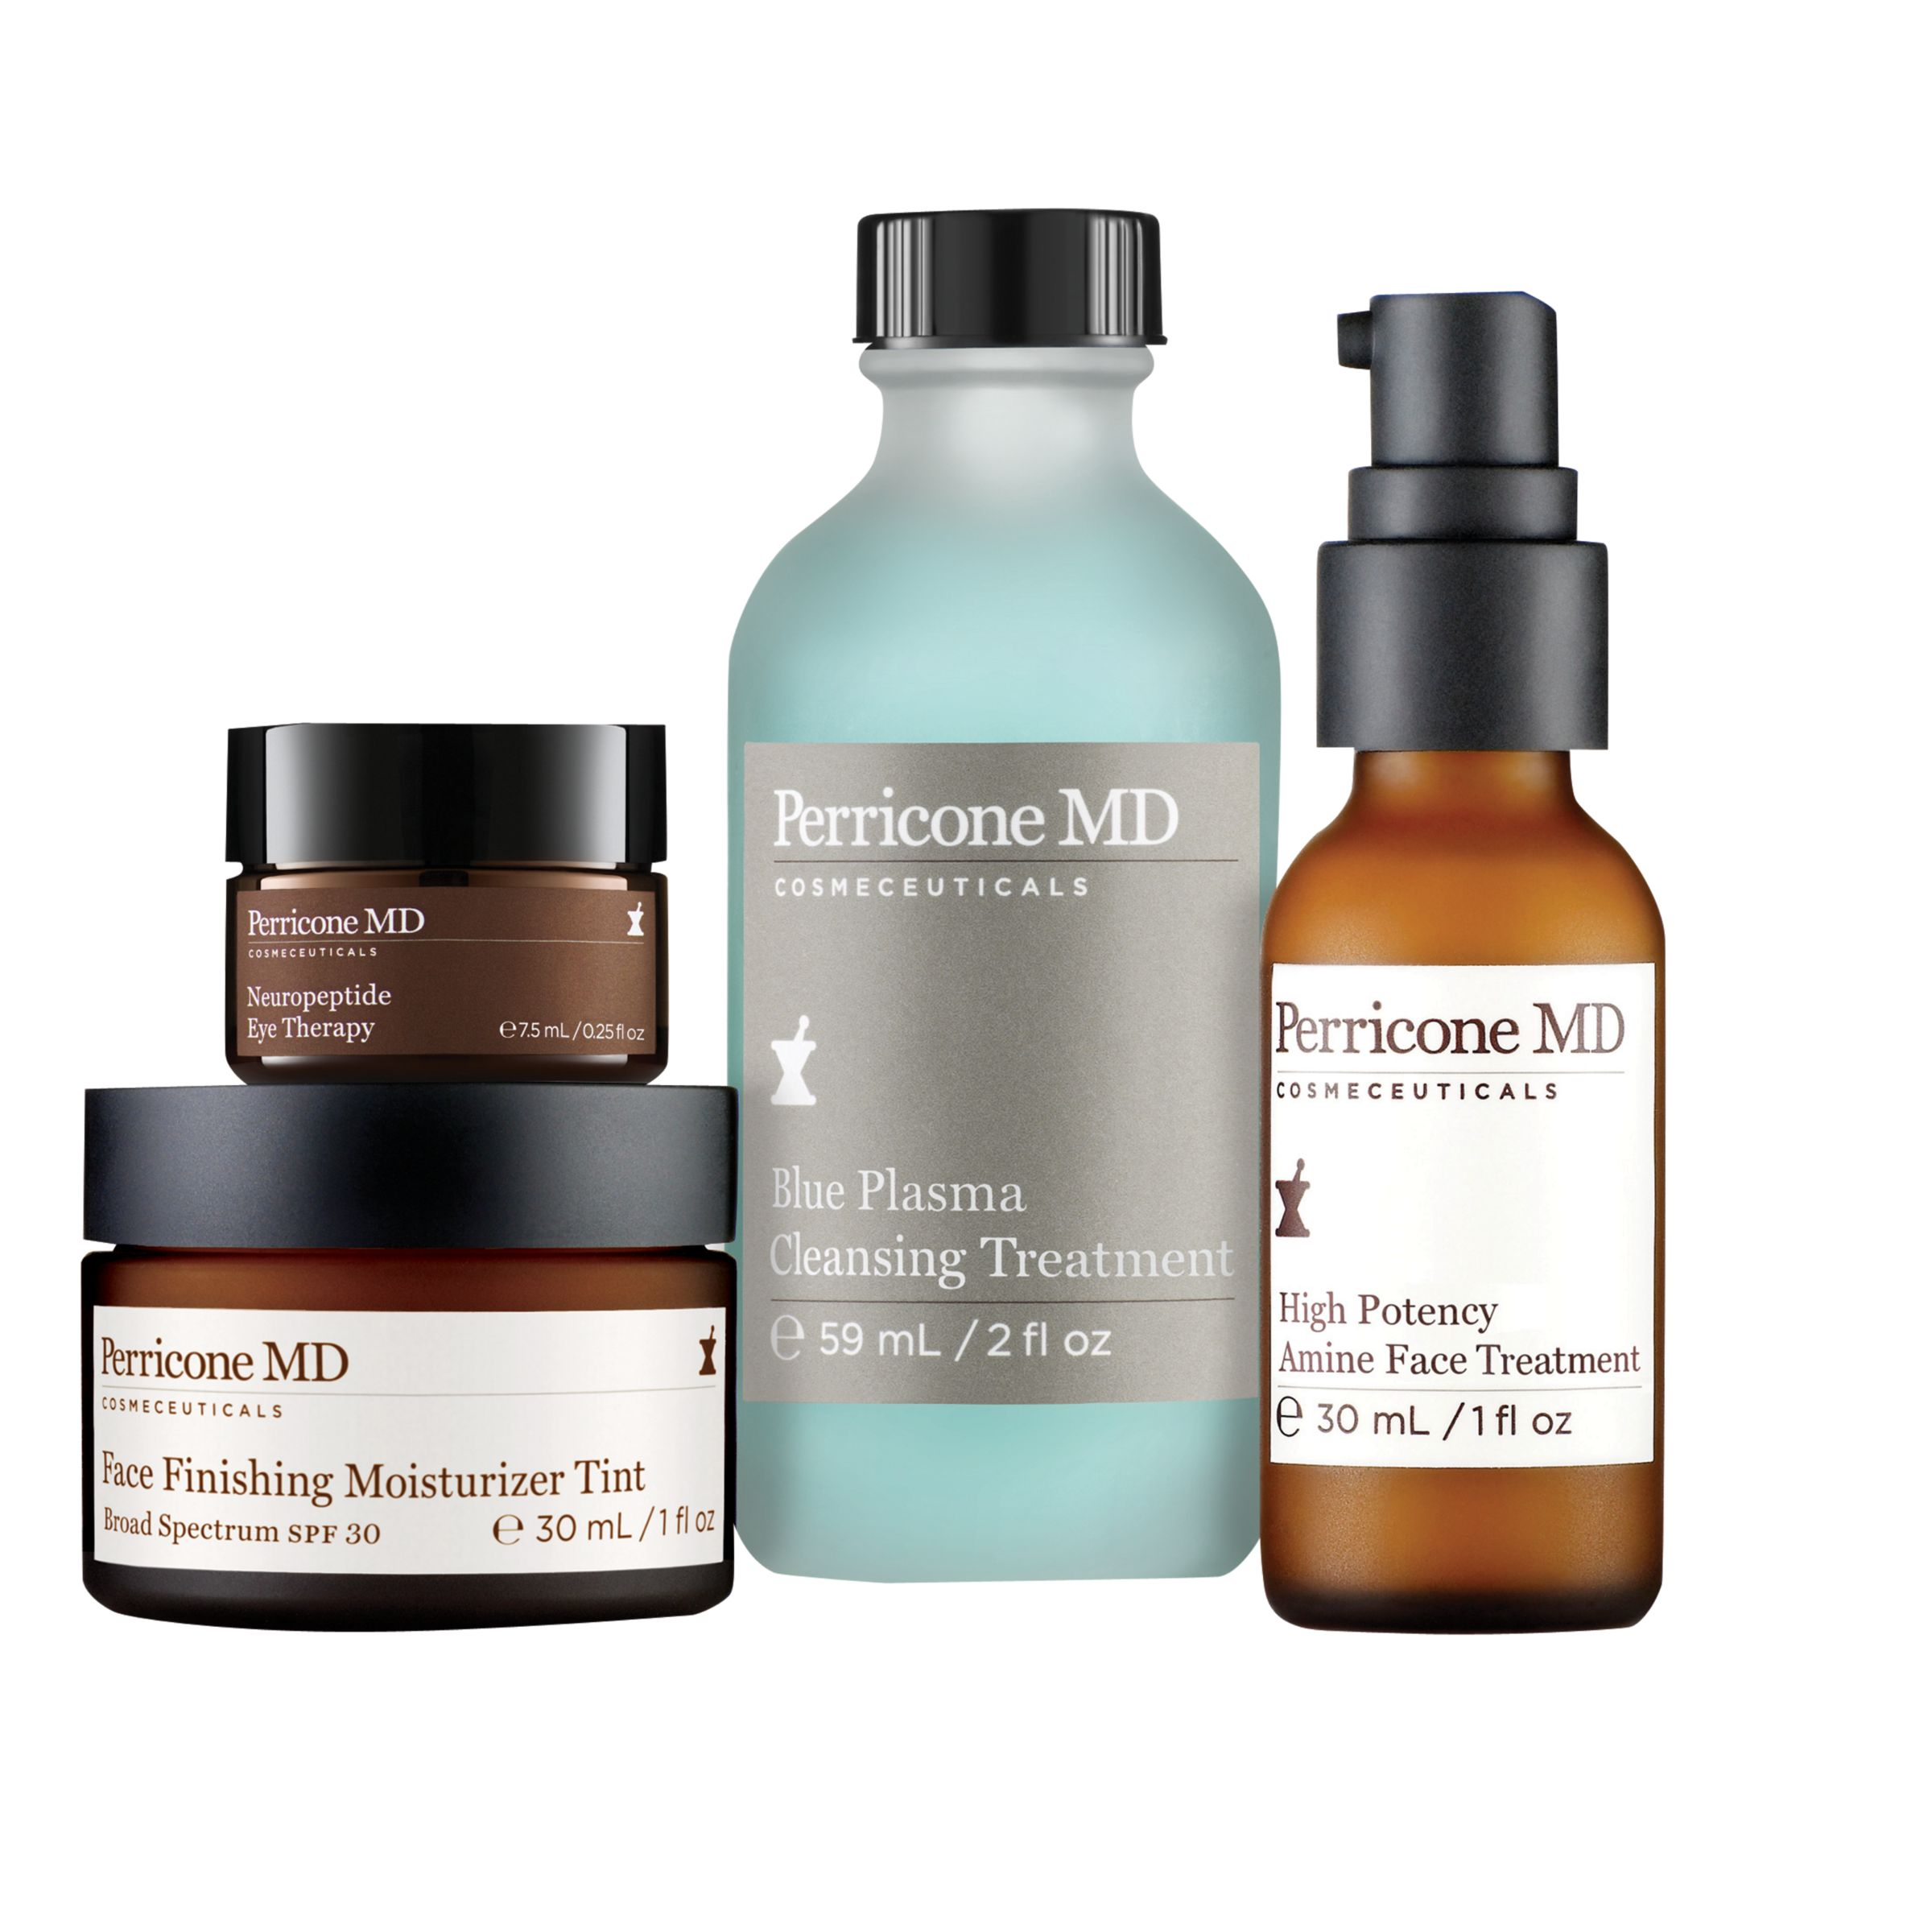 Perricone MD Perricone MD Gift of Youthful Radiance